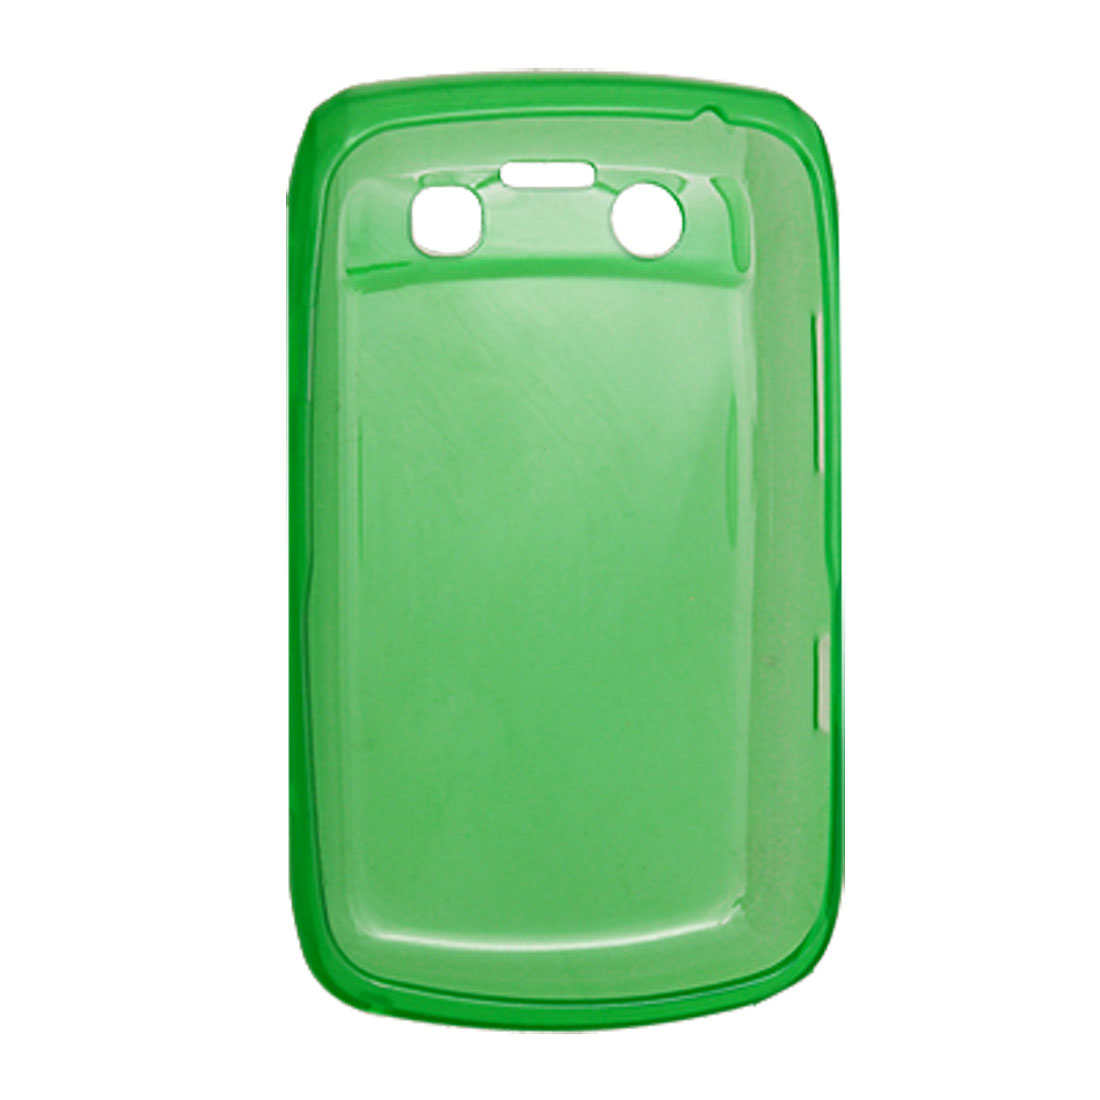 Soft Plastic Shell Green Phone Cover for BlackBerry 9700